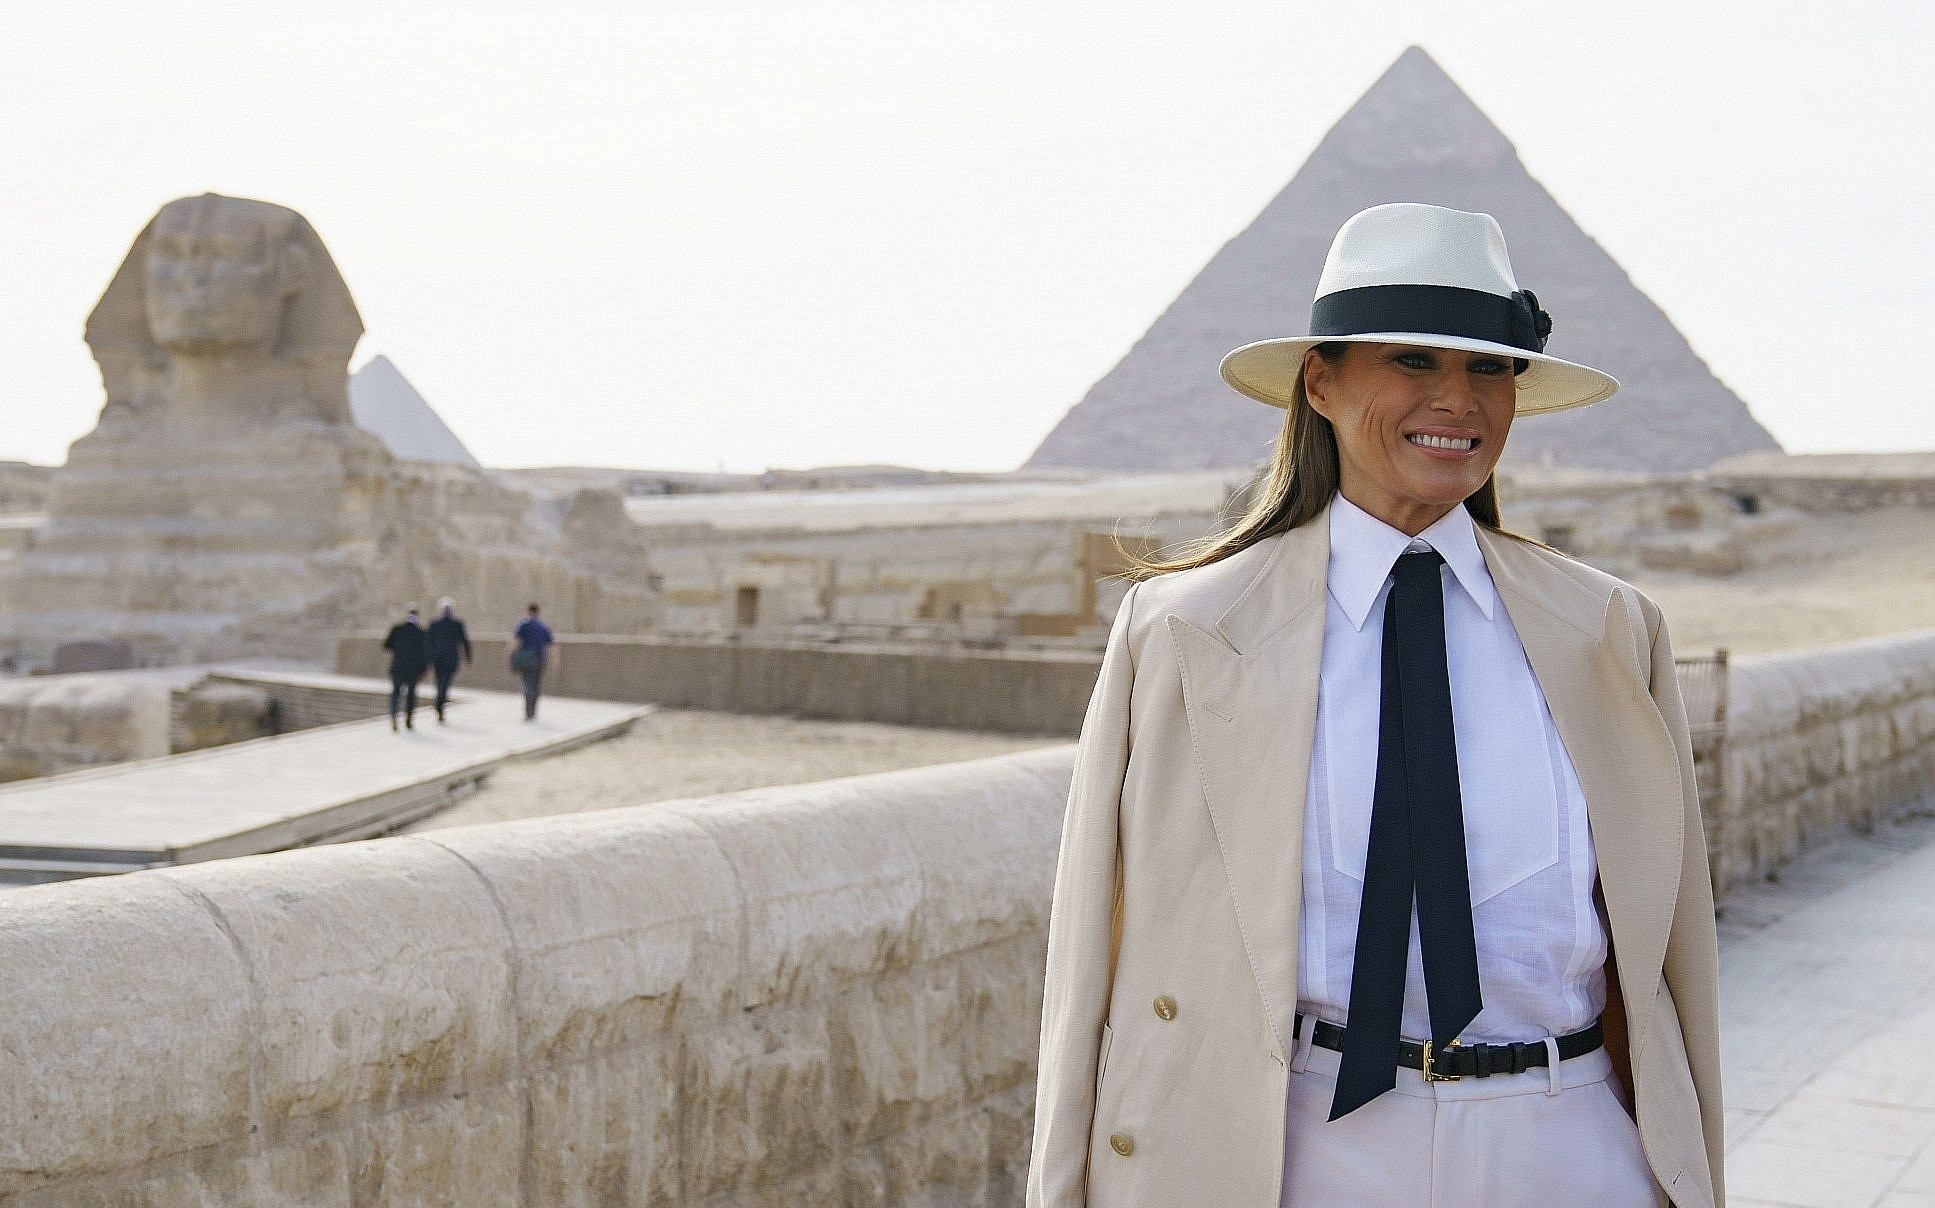 US First Lady Melania Trump wraps up solo African tour in Egypt